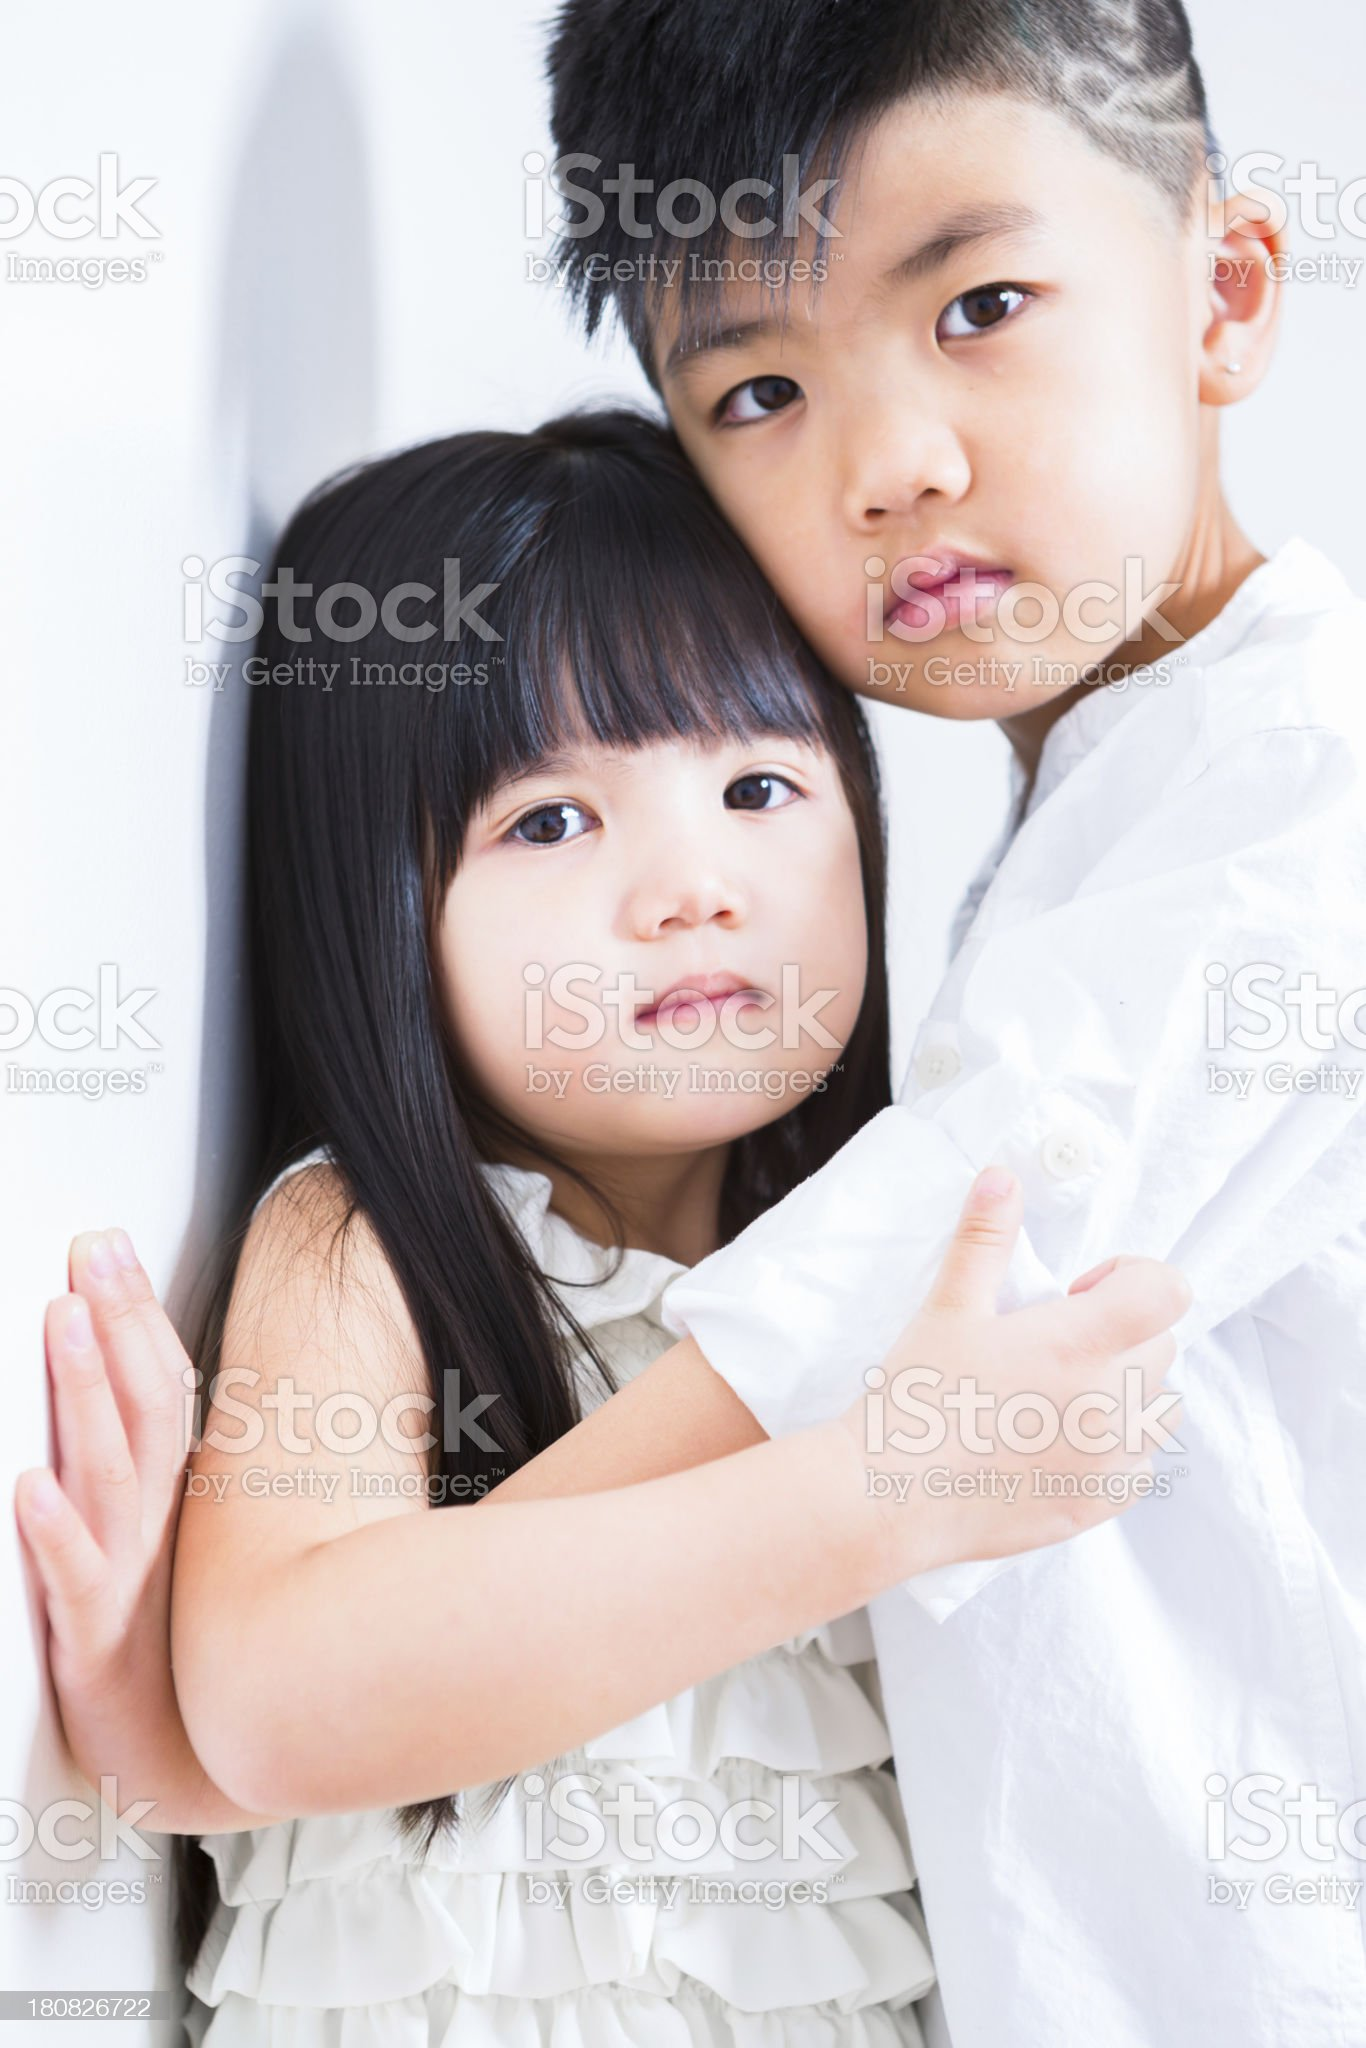 Cute sibling portrait royalty-free stock photo